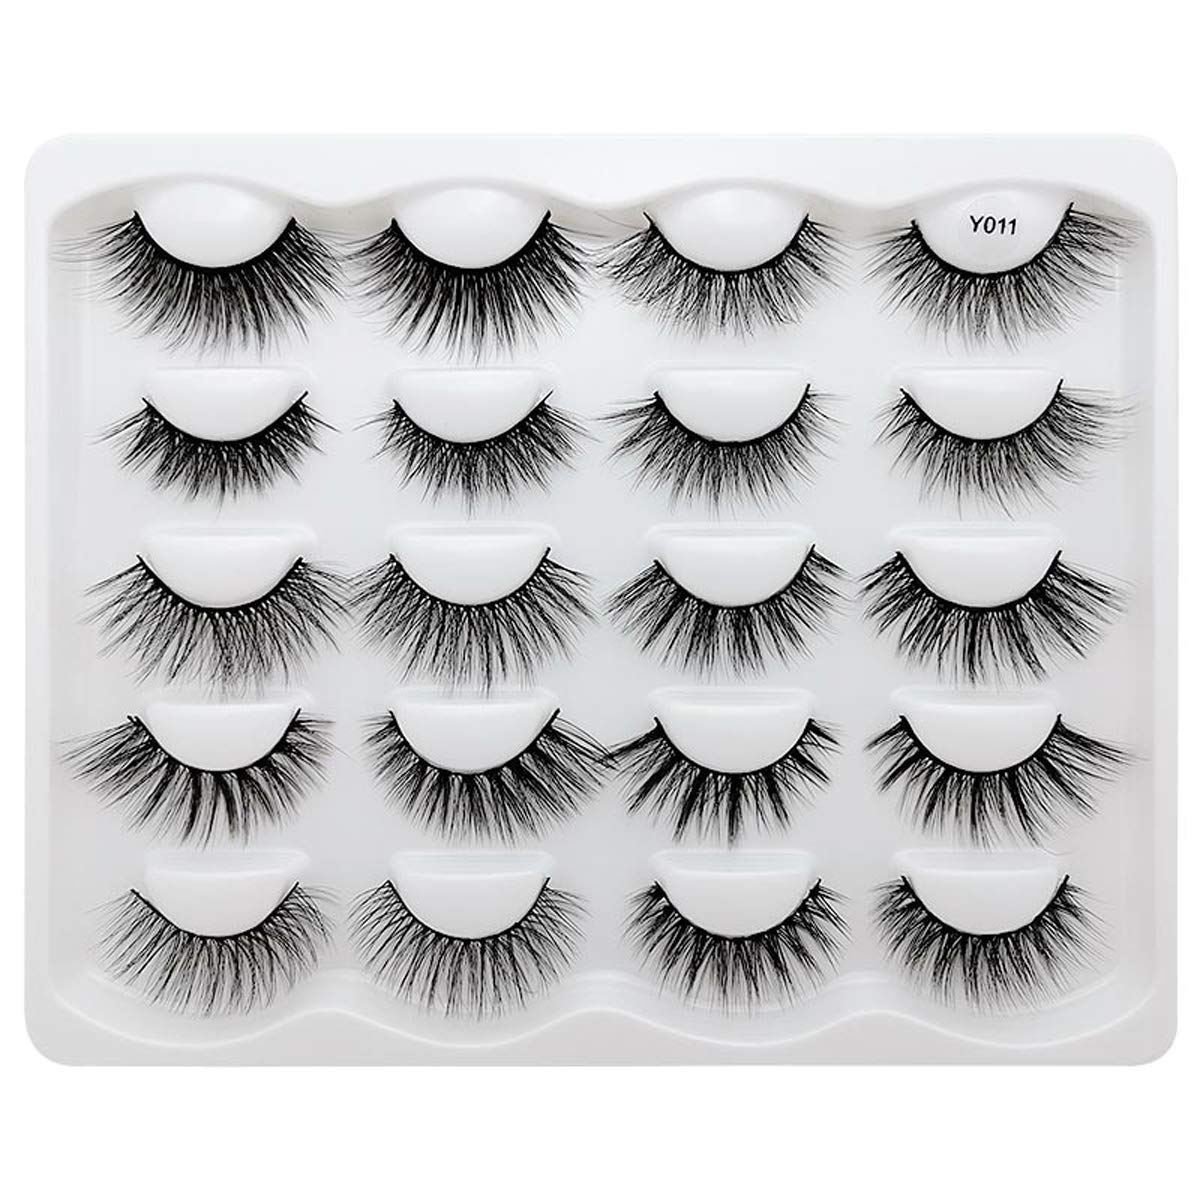 Vayator 10 Pairs /10 Different Styles Mixed 3D Soft Mink False Eyelashes Handmade Wispy Fluffy Long Lashes Natural Eye Extension Makeup Kit (Y011)